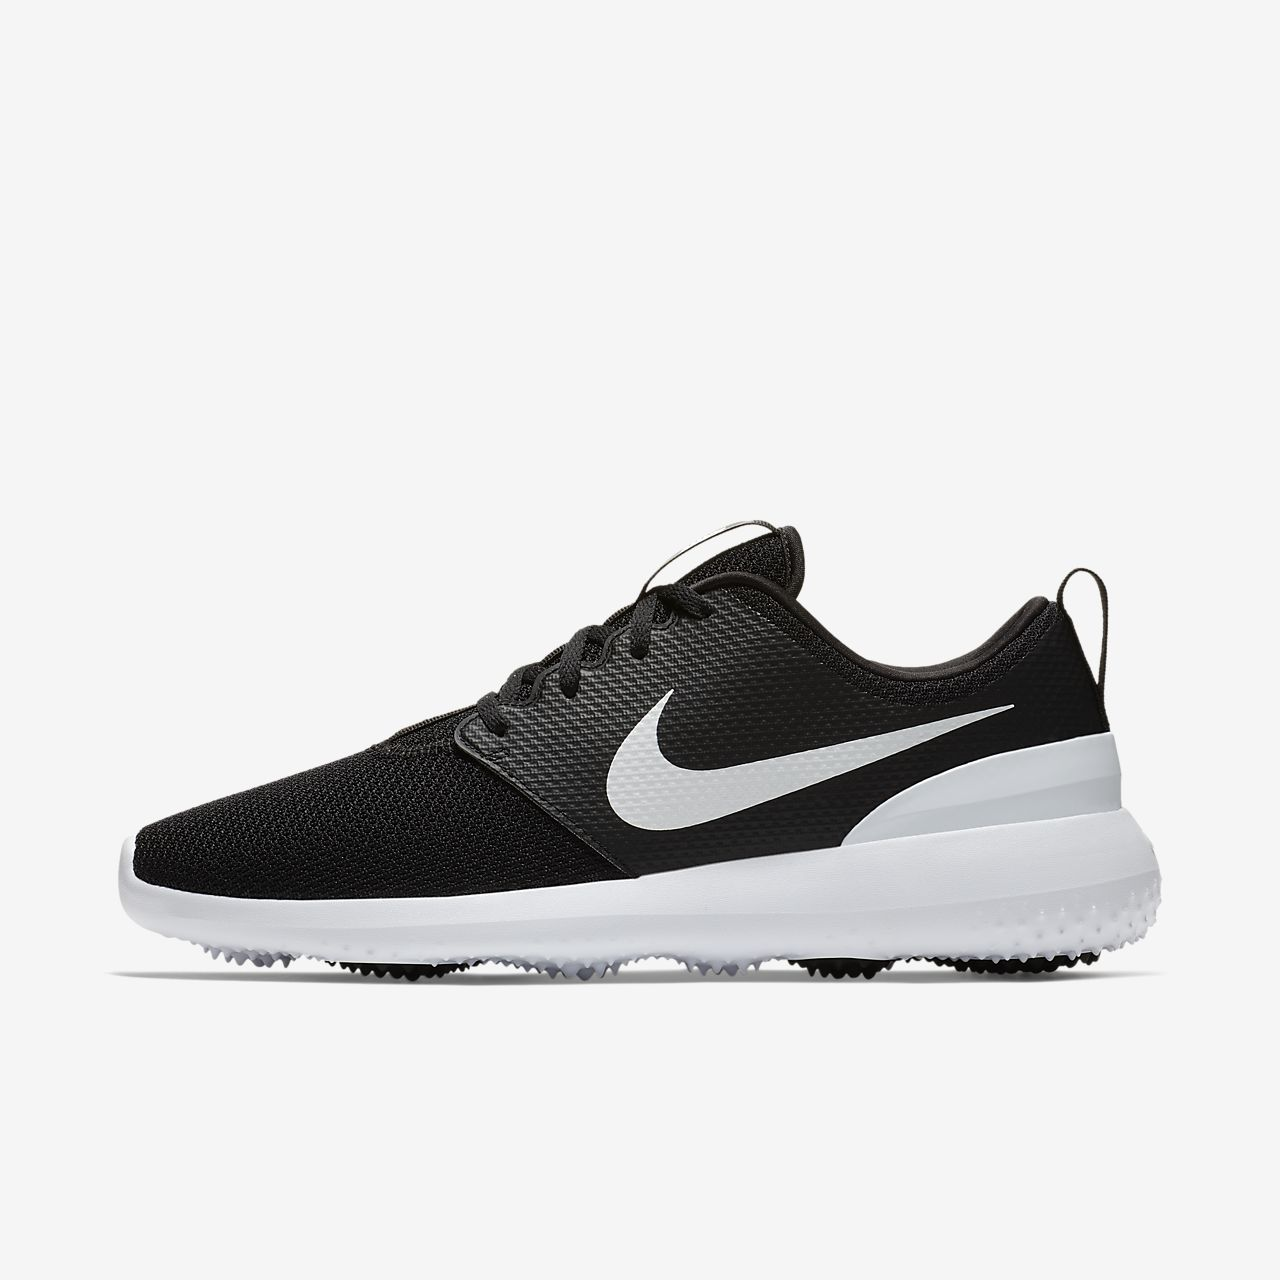 d8131ee99c8 Nike Roshe G Men's Golf Shoe